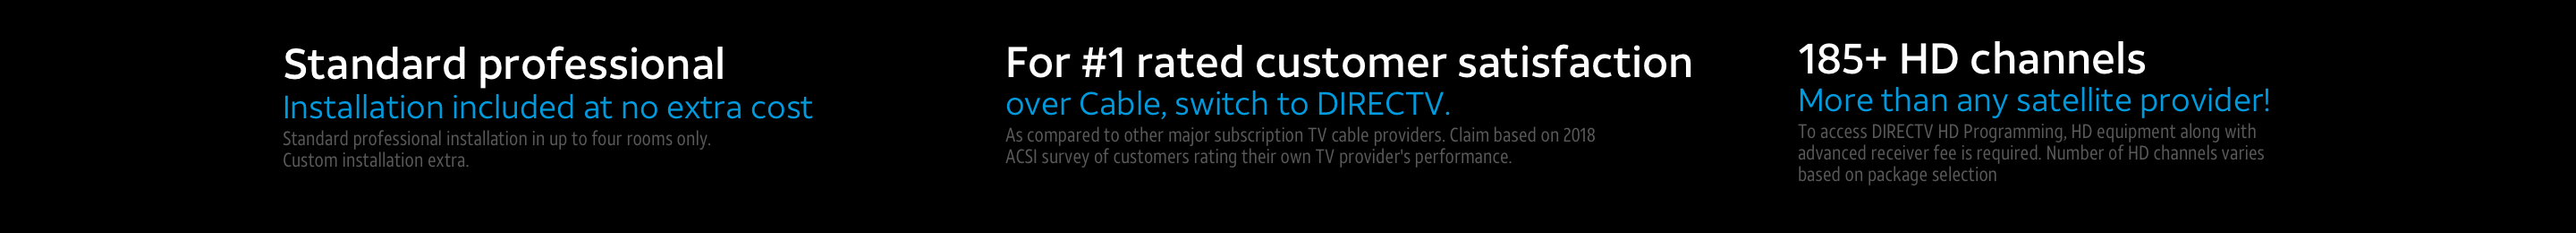 Tired of Time Warner Cable? | Call 877-680-4958